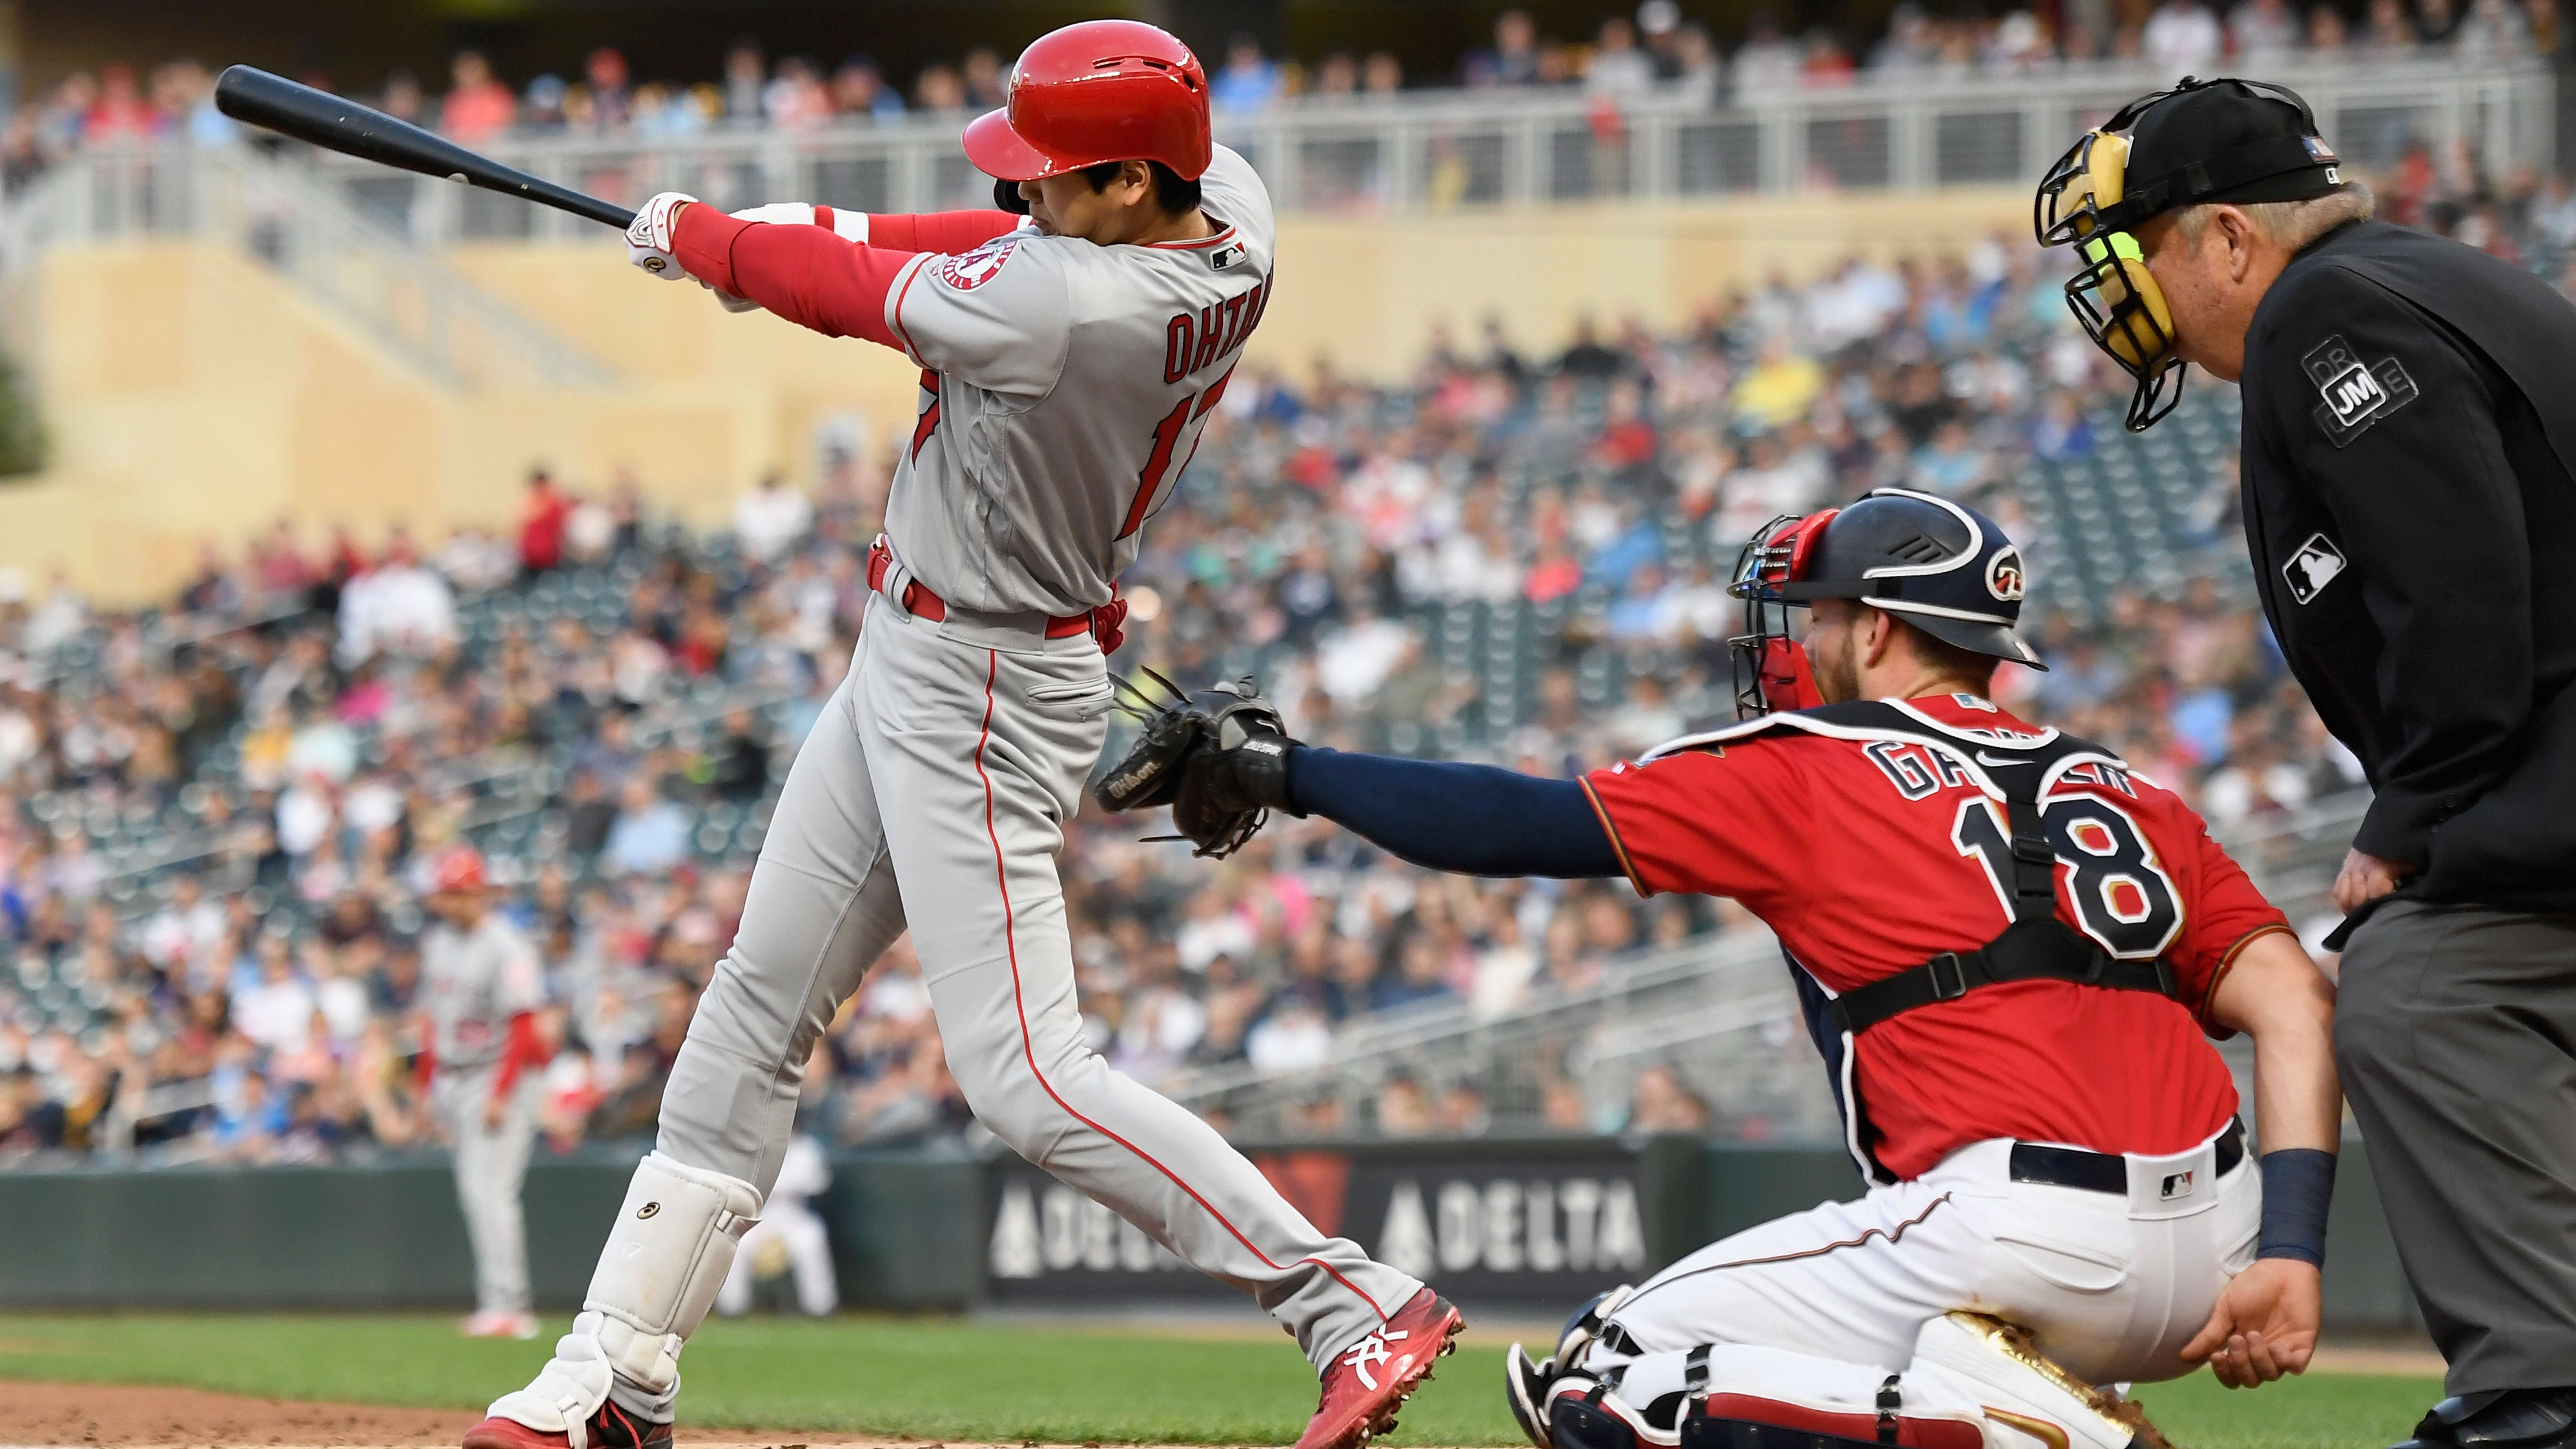 MINNEAPOLIS, MN - MAY 14: Shohei Ohtani #17 of the Los Angeles Angels of Anaheim hits a single as Mitch Garver #18 of the Minnesota Twins catches during the fourth inning of the game on May 14, 2019 at Target Field in Minneapolis, Minnesota. (Photo by Hannah Foslien/Getty Images)